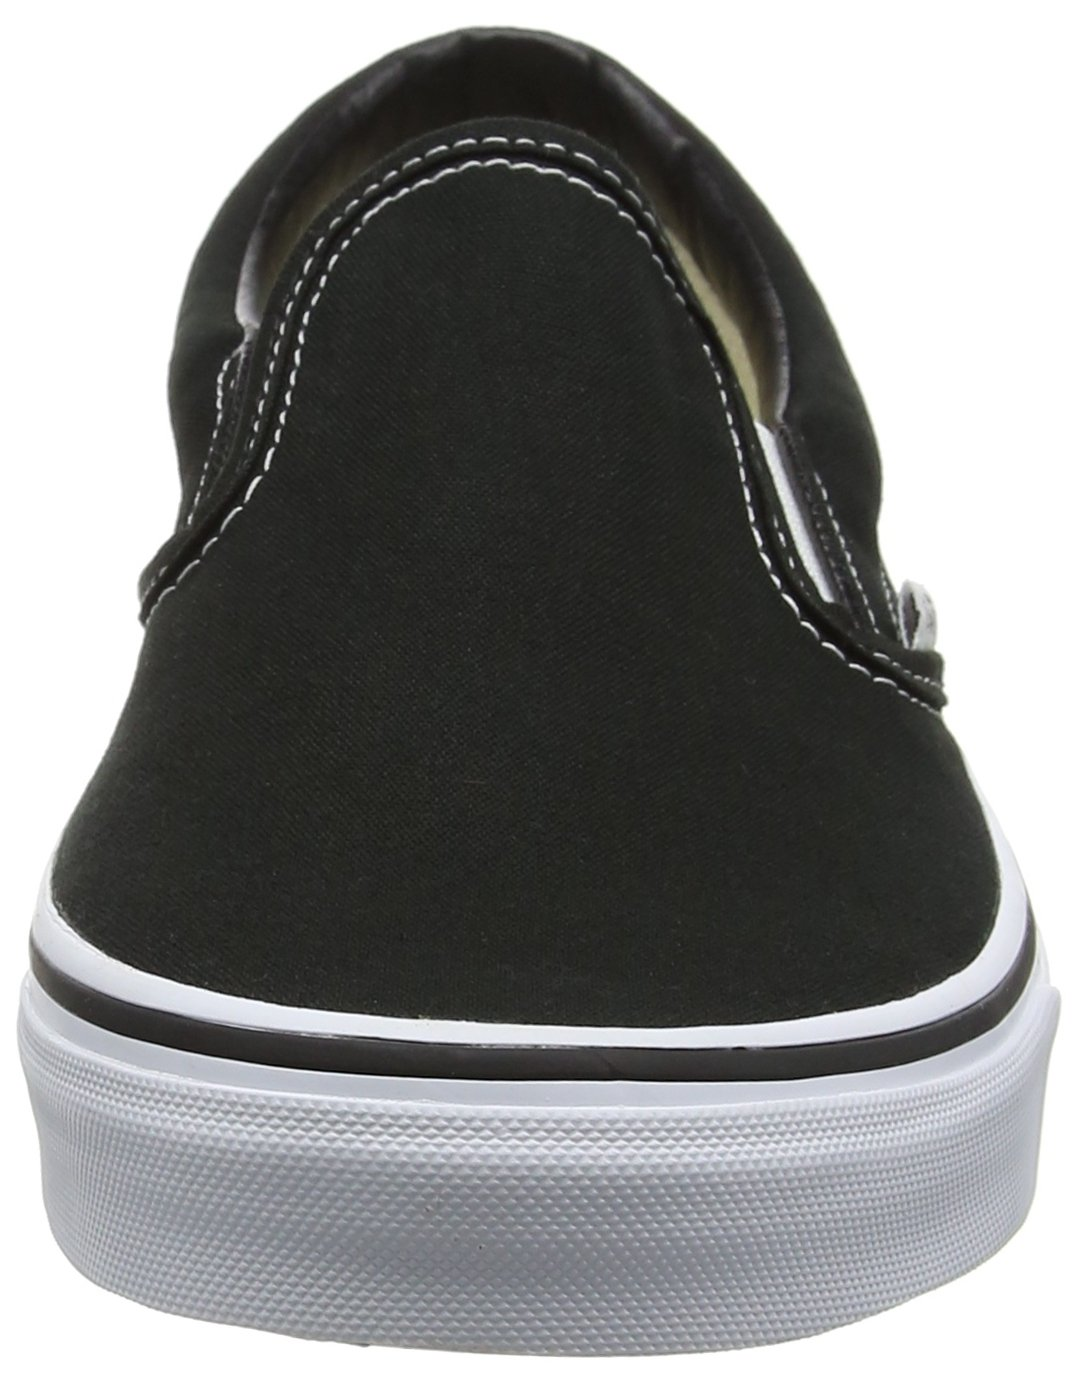 Vans Unisex Classic Slip-ON (9.5 Women /8 Men M US) by Vans (Image #4)